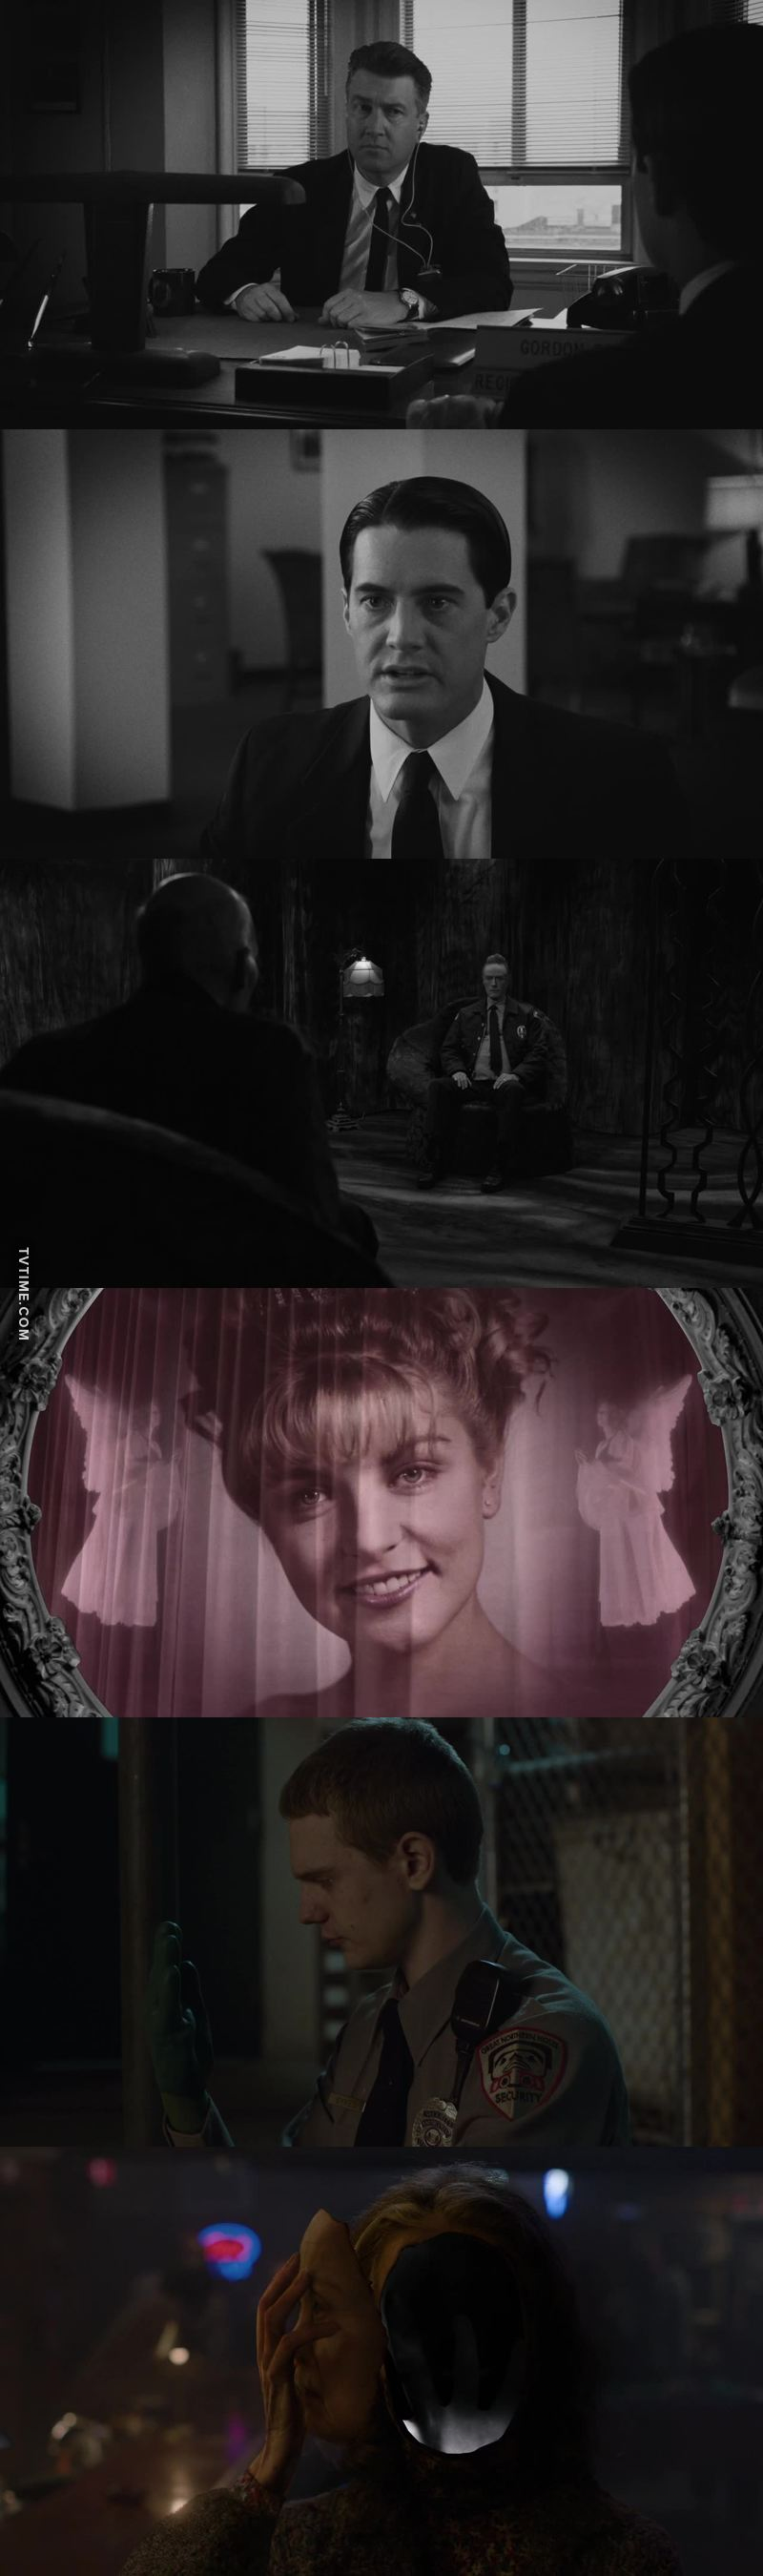 Twin Peaks at its best! Amazing episode!